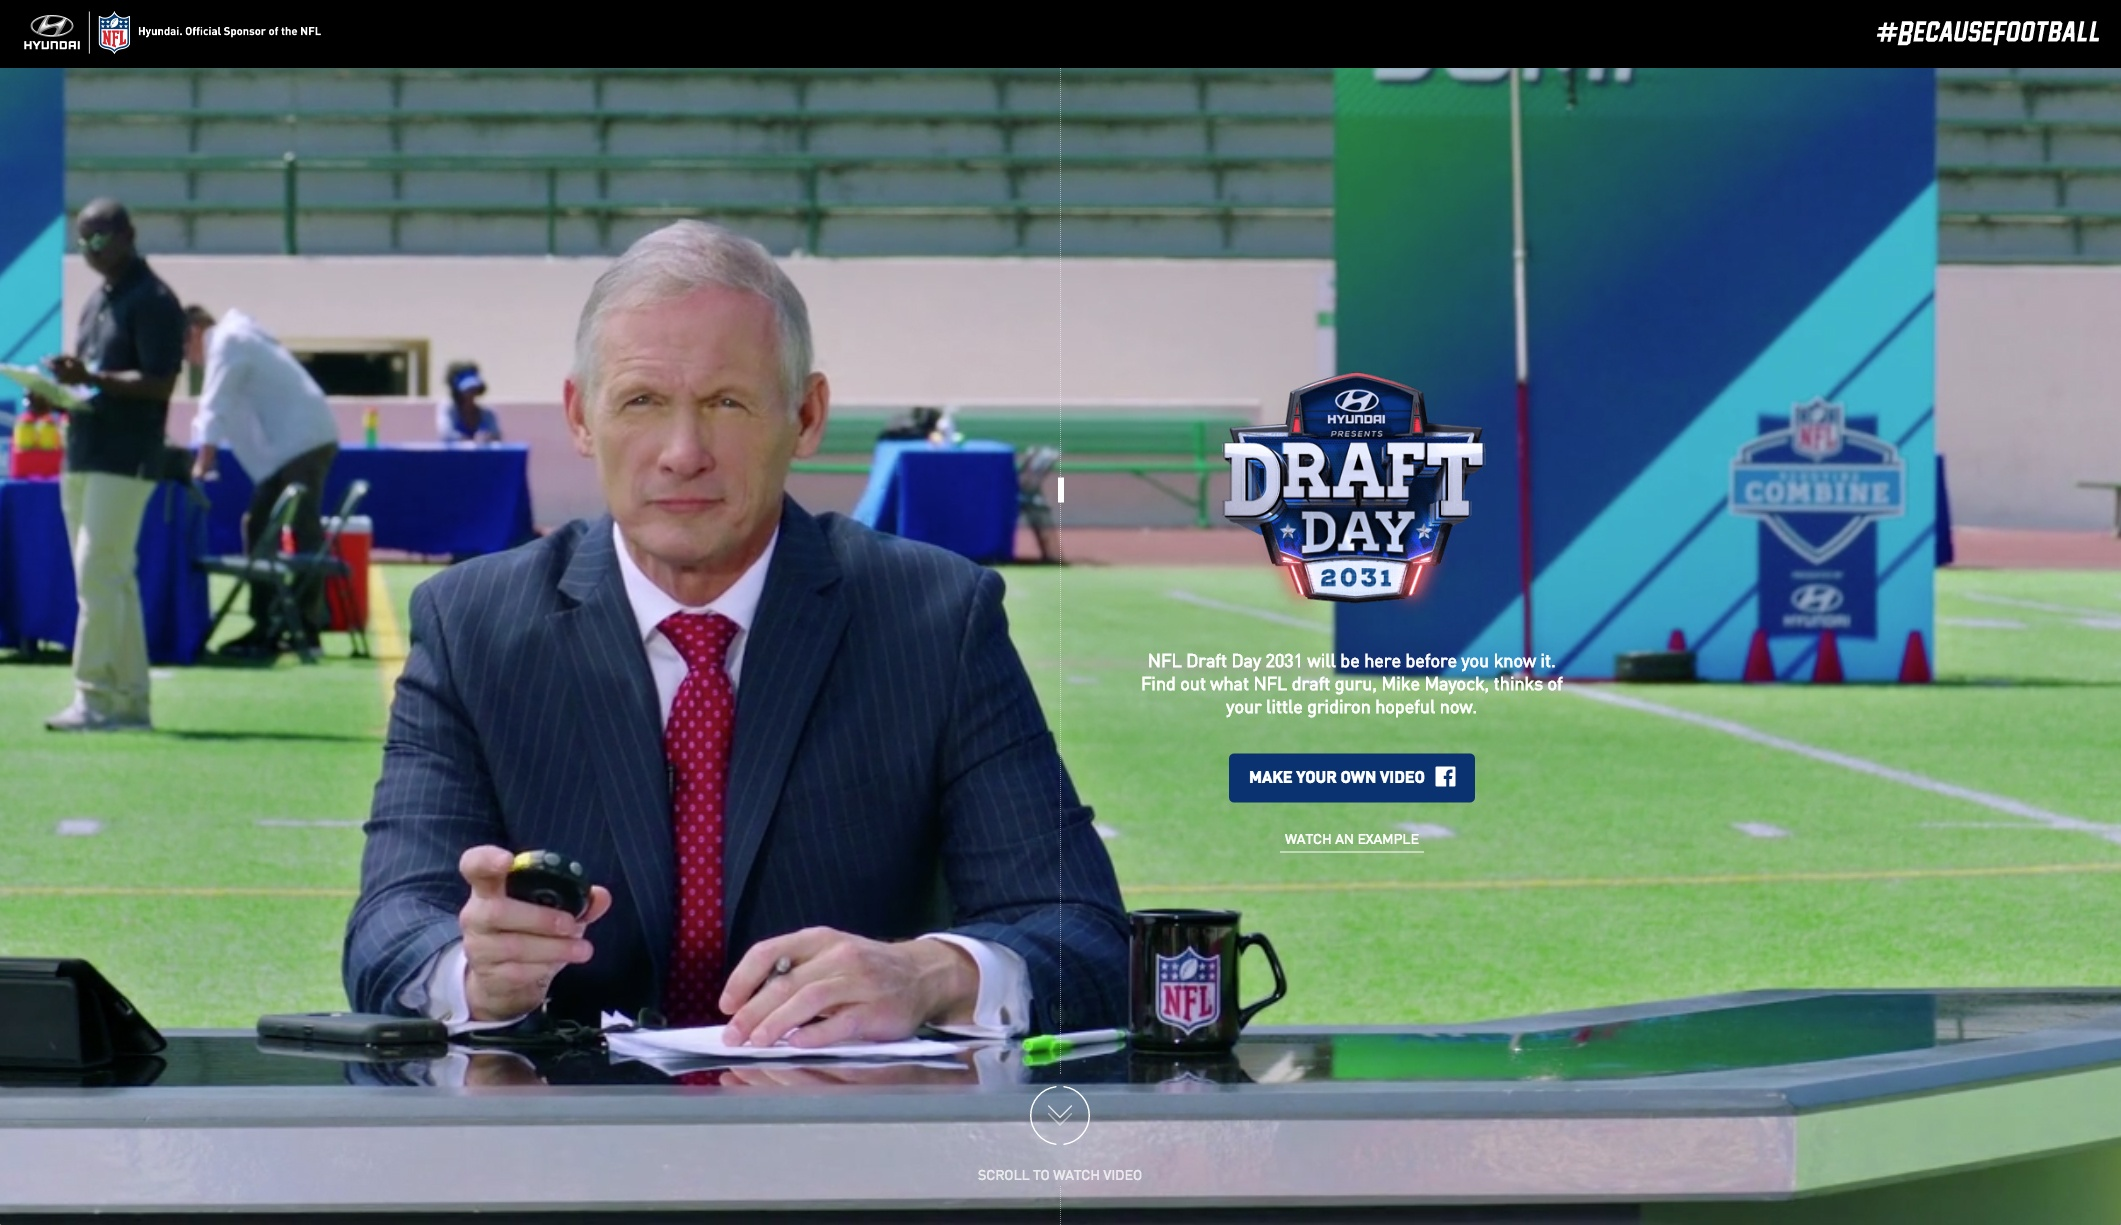 Thumbnail for Draft Day 2031